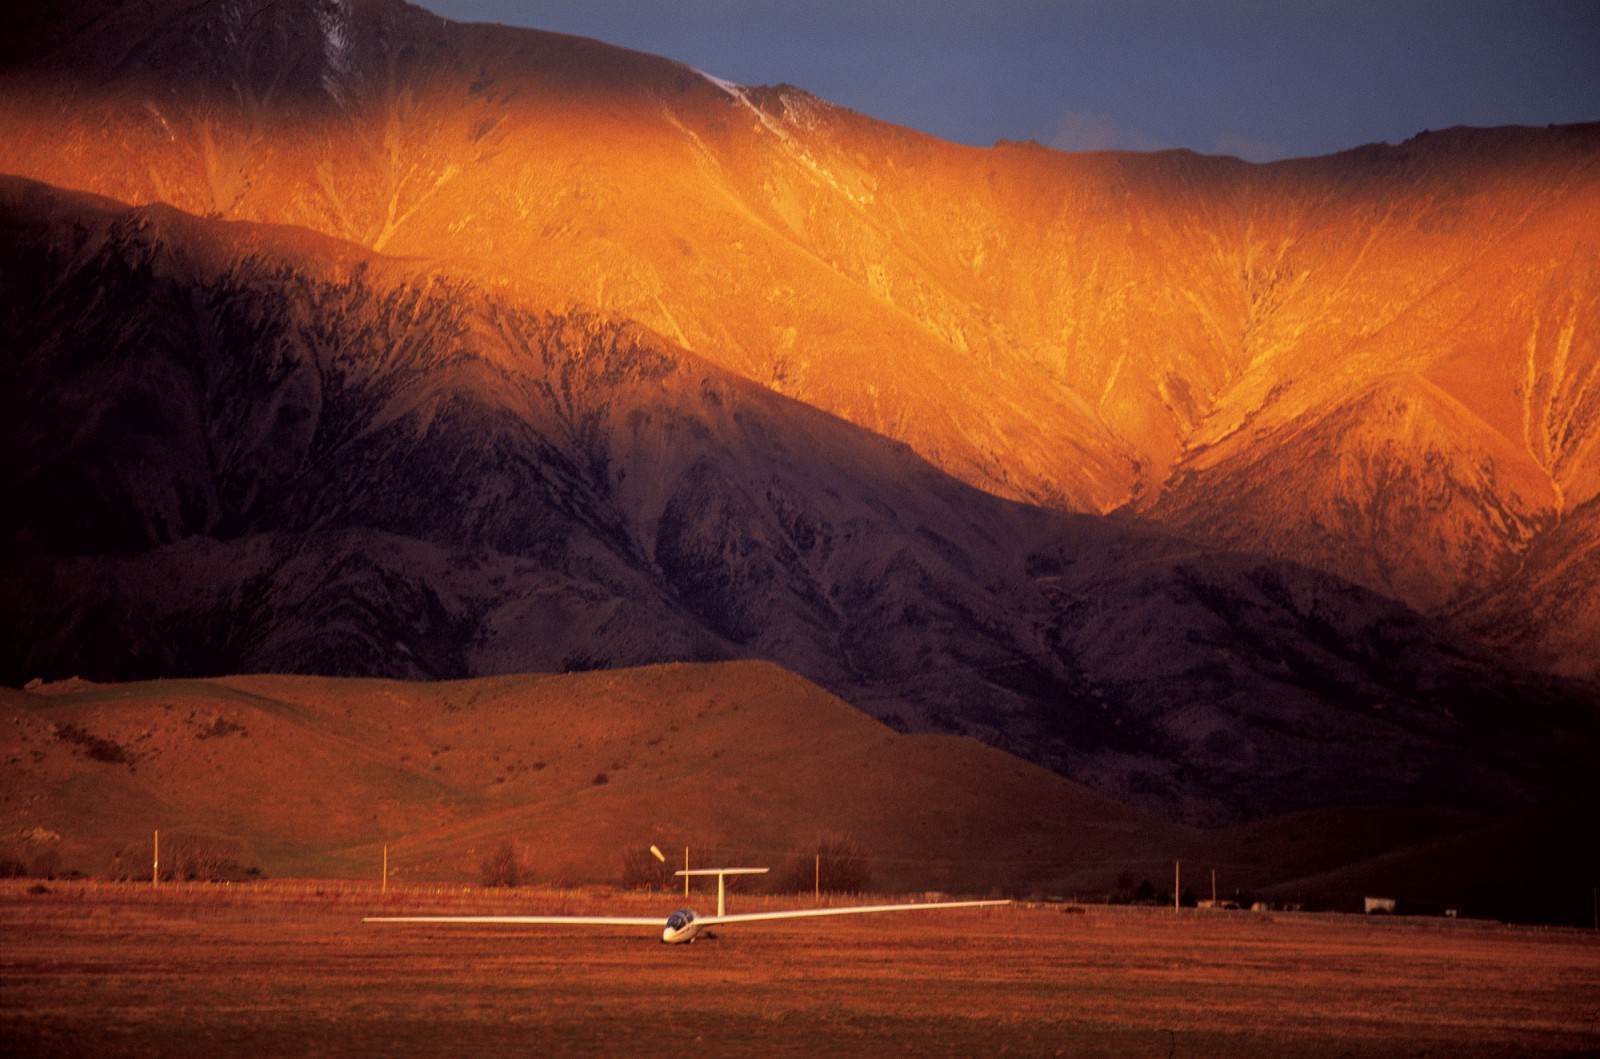 In the lurid glow of a late winter's afternoon, the Perlan Project's customised DG 505 sailplane skids along the ground at Omarama, beneath the looming St Cuthbert Range, after an abortive attempt to penetrate low-level turbulence and access a powerful mountain wave.